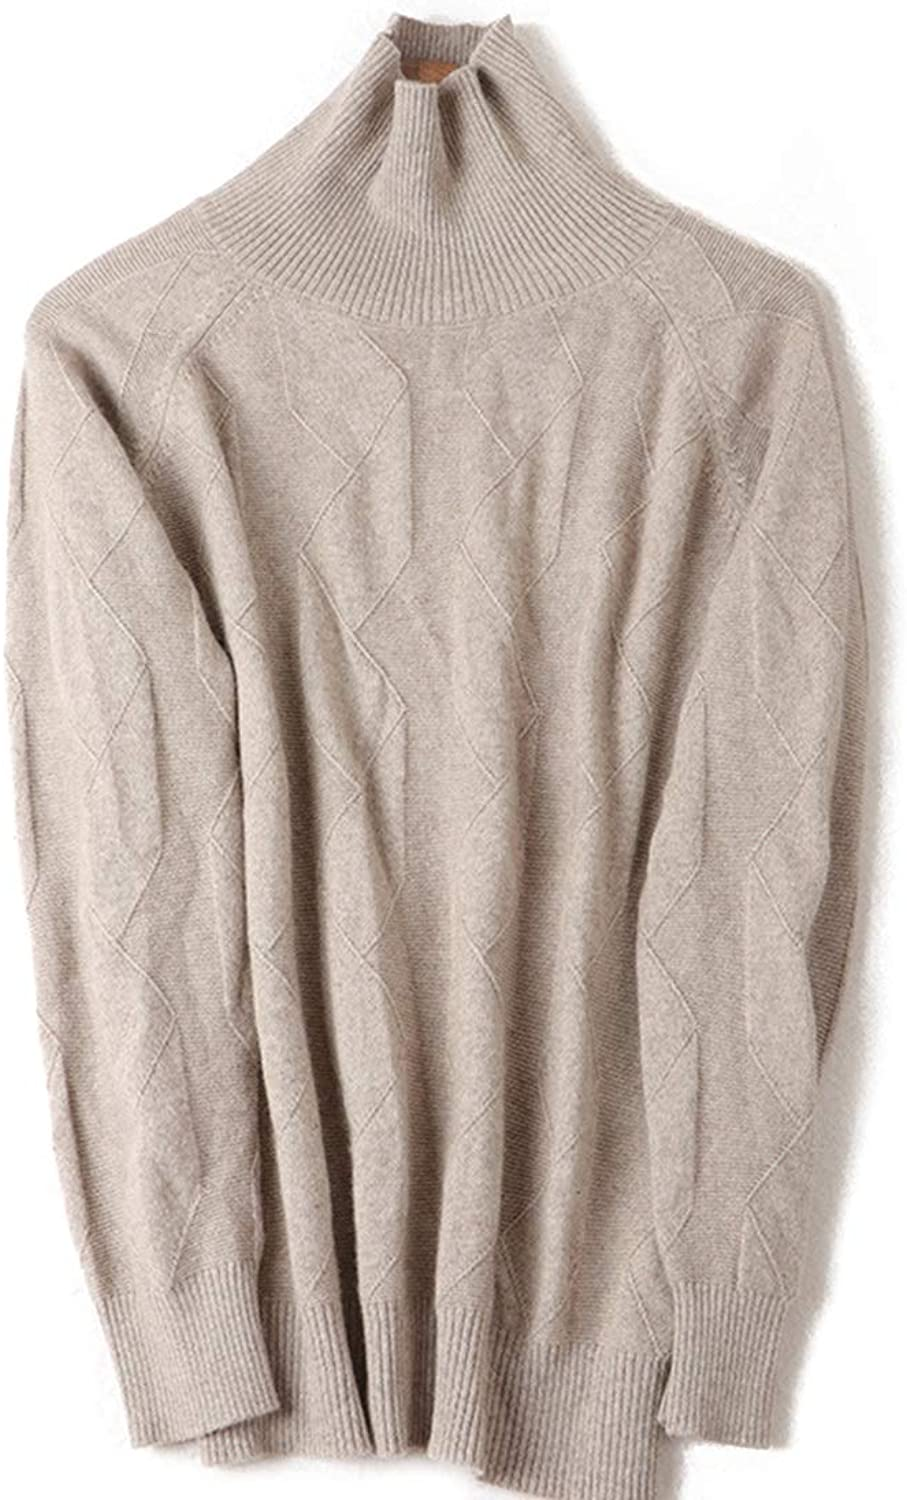 CEFULTY Women's Warm Knit Sweater Cashmere High Collar Long Sleeve Size MXL